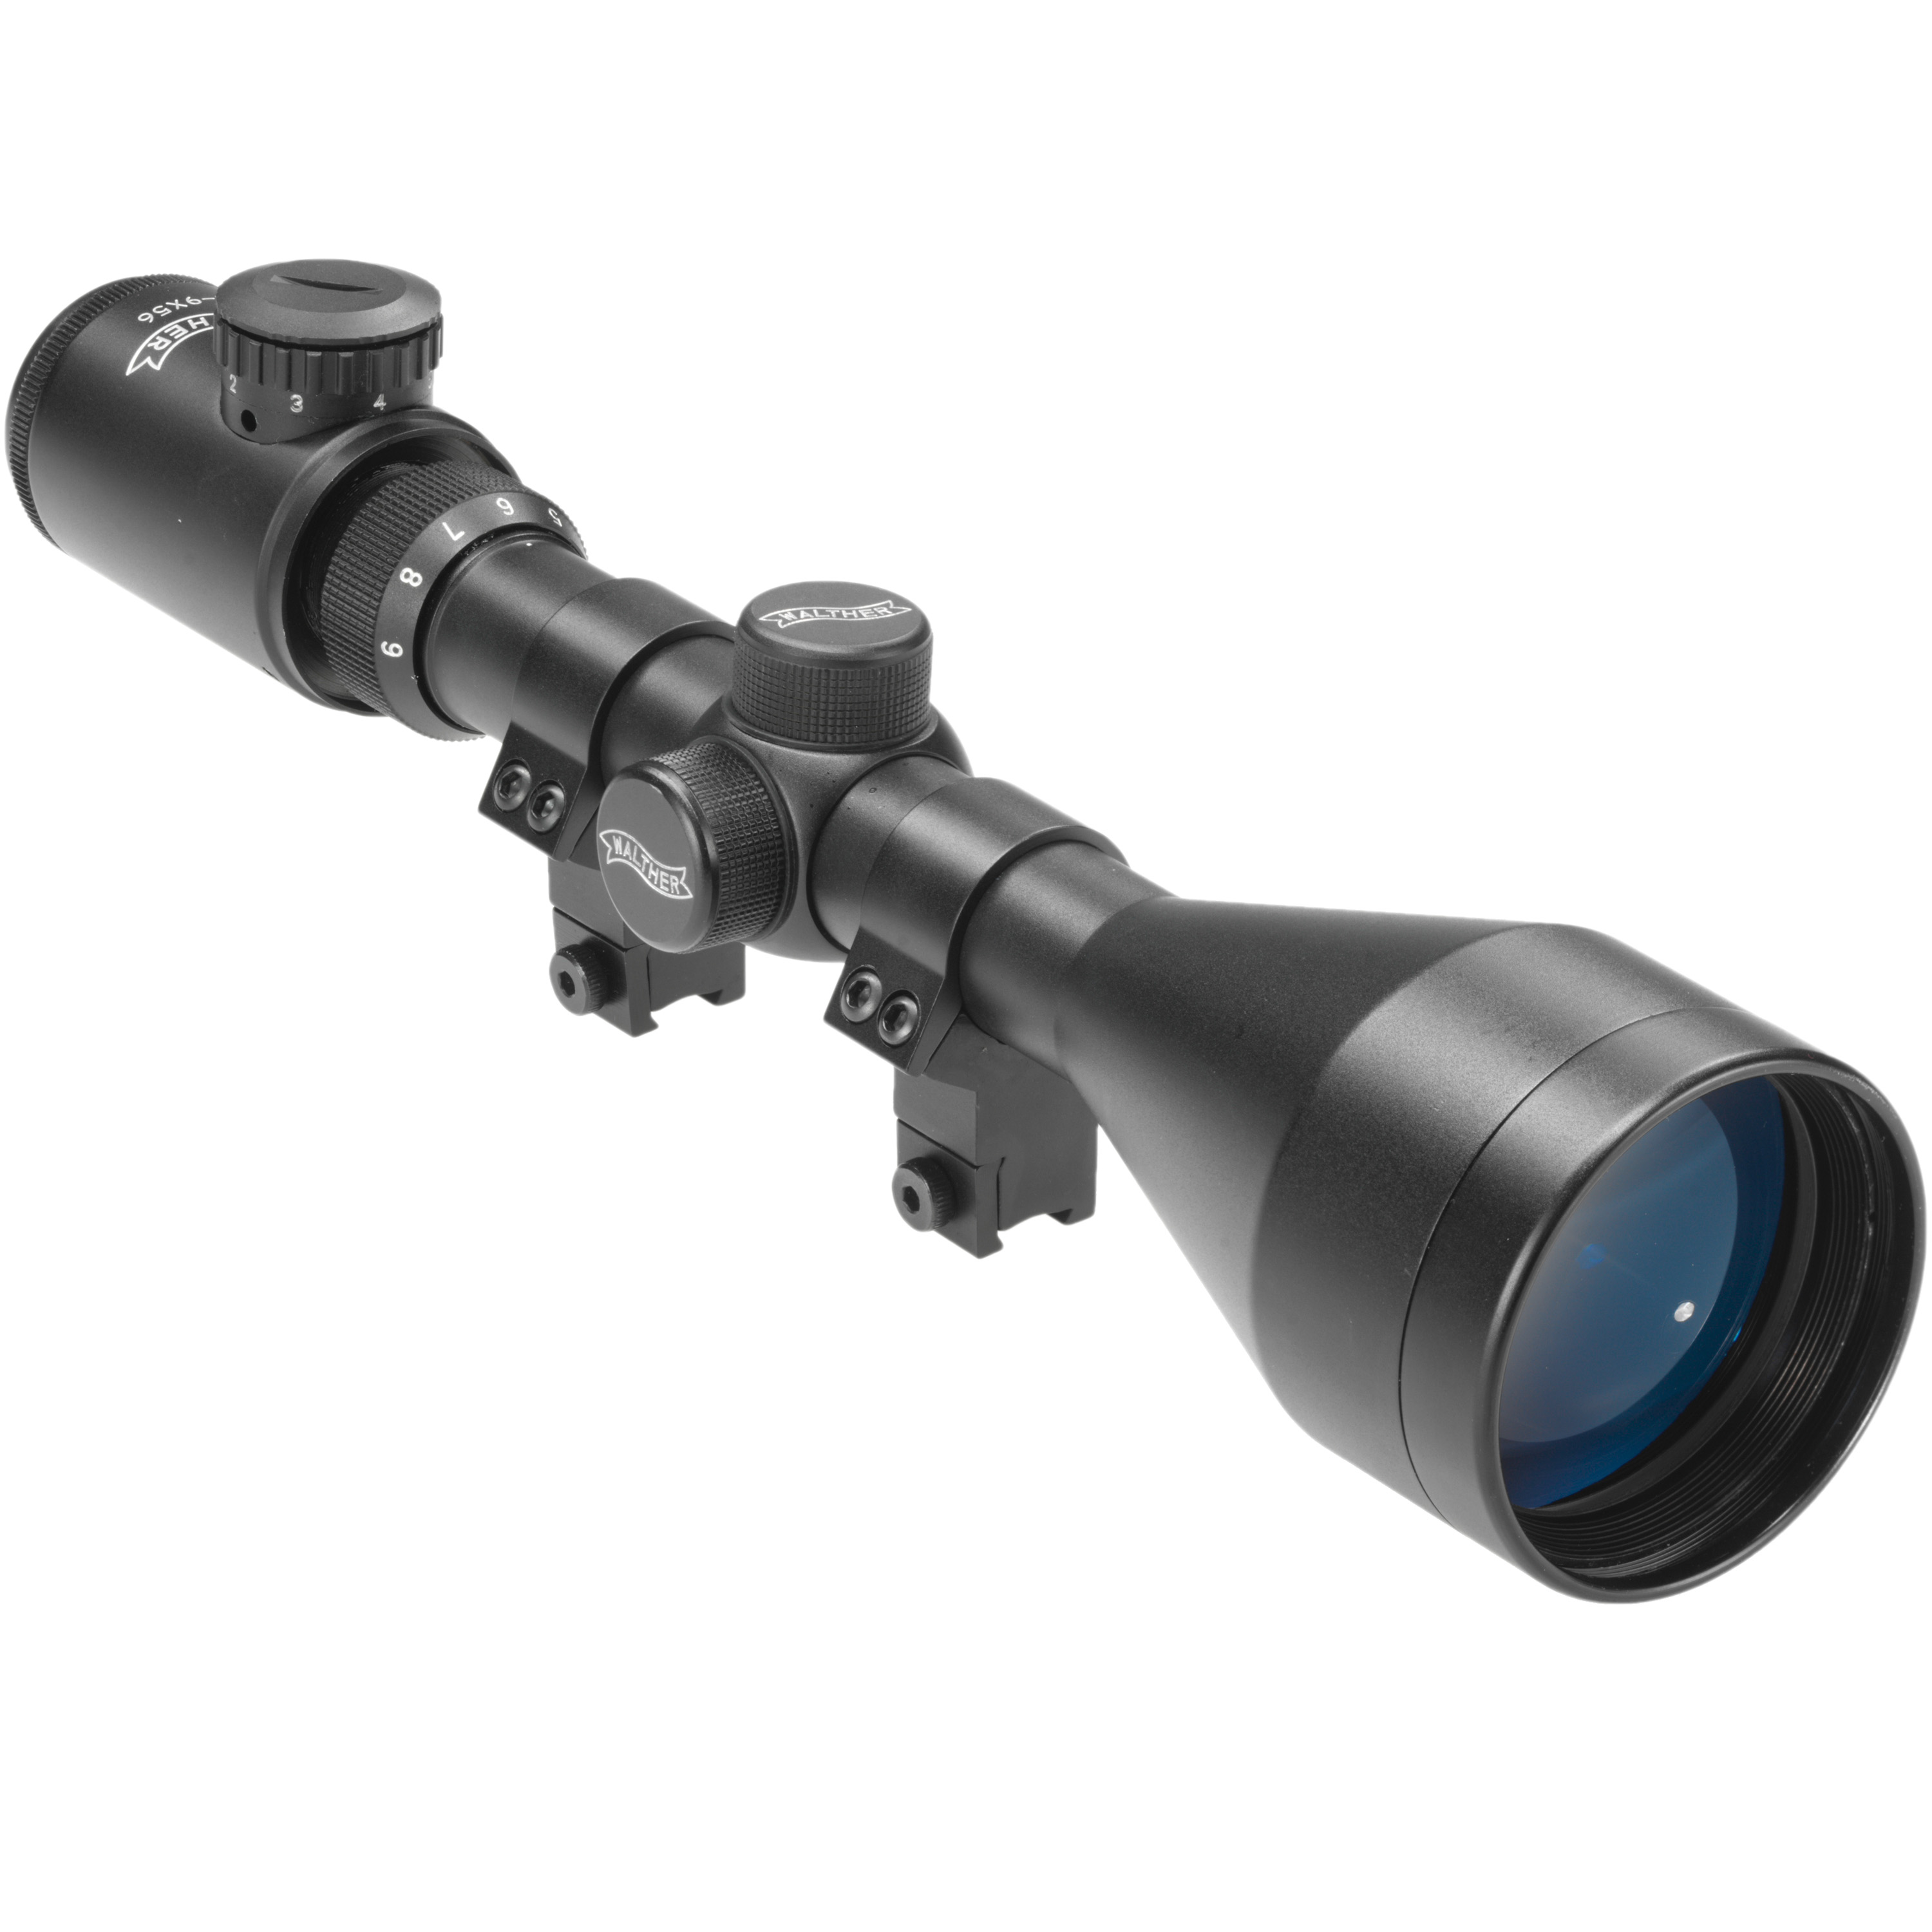 Rifle Scope Walther 3-9 x 56